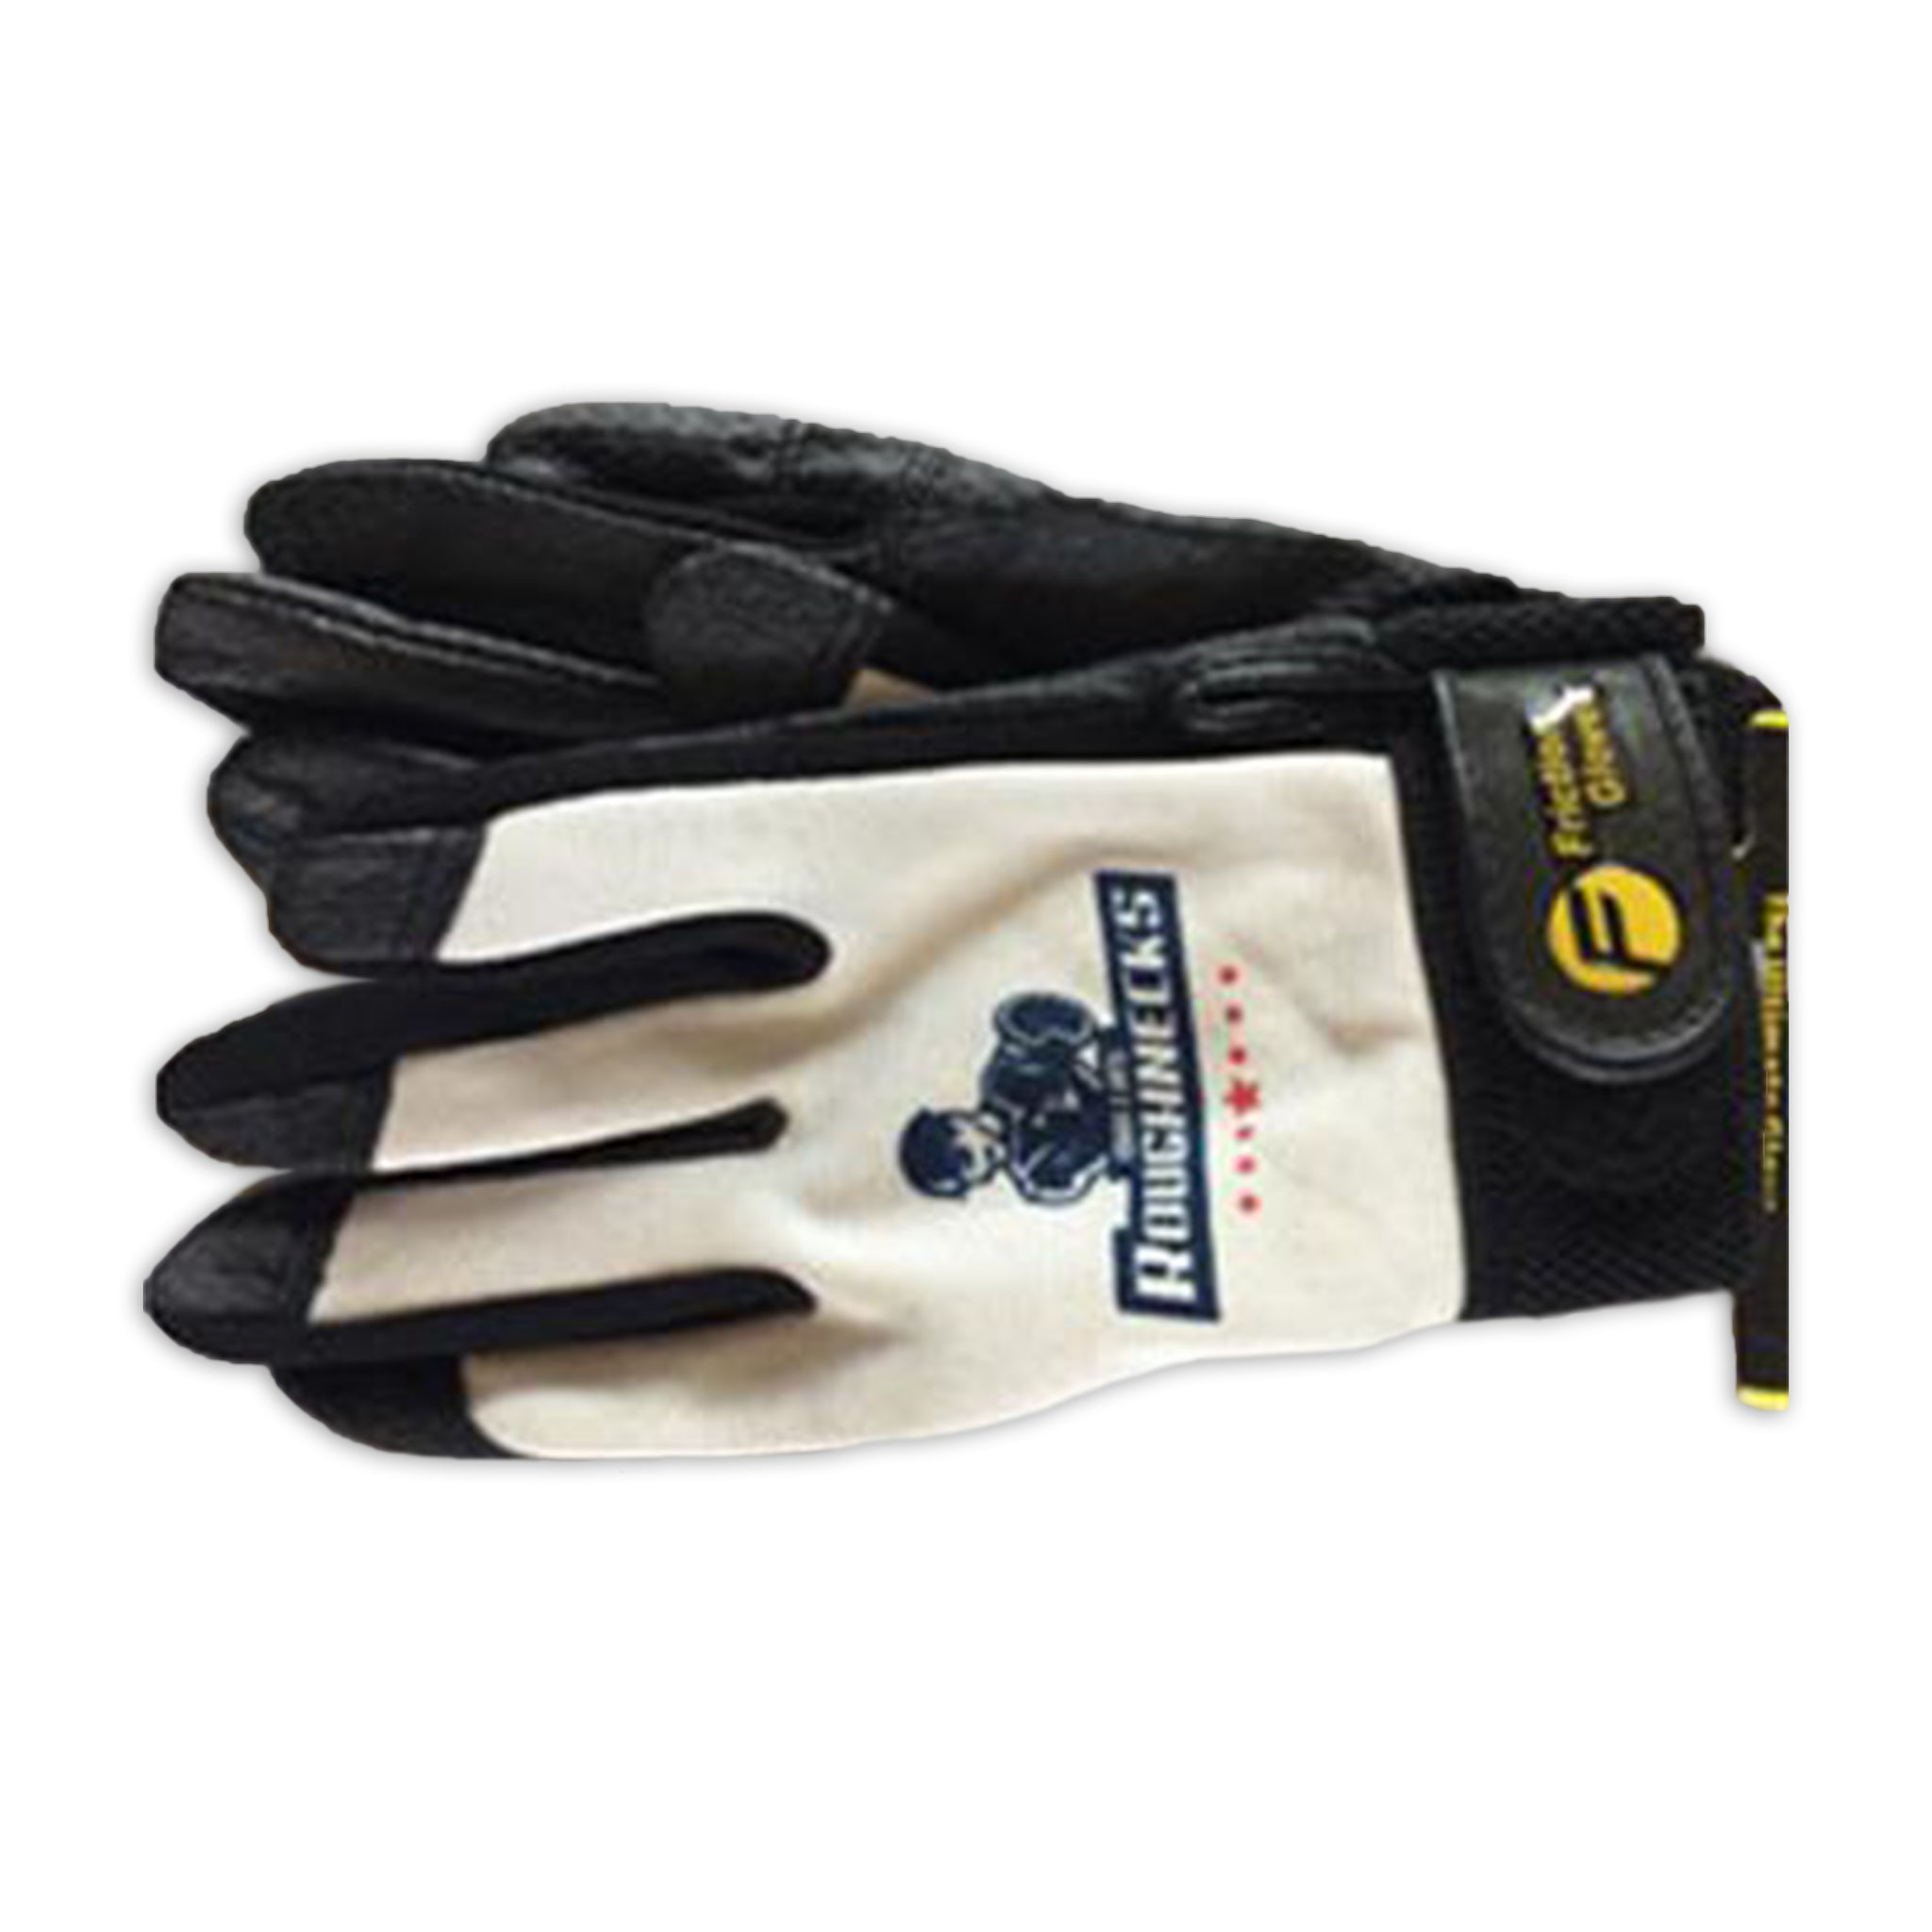 Roughnecks Friction 3 Gloves